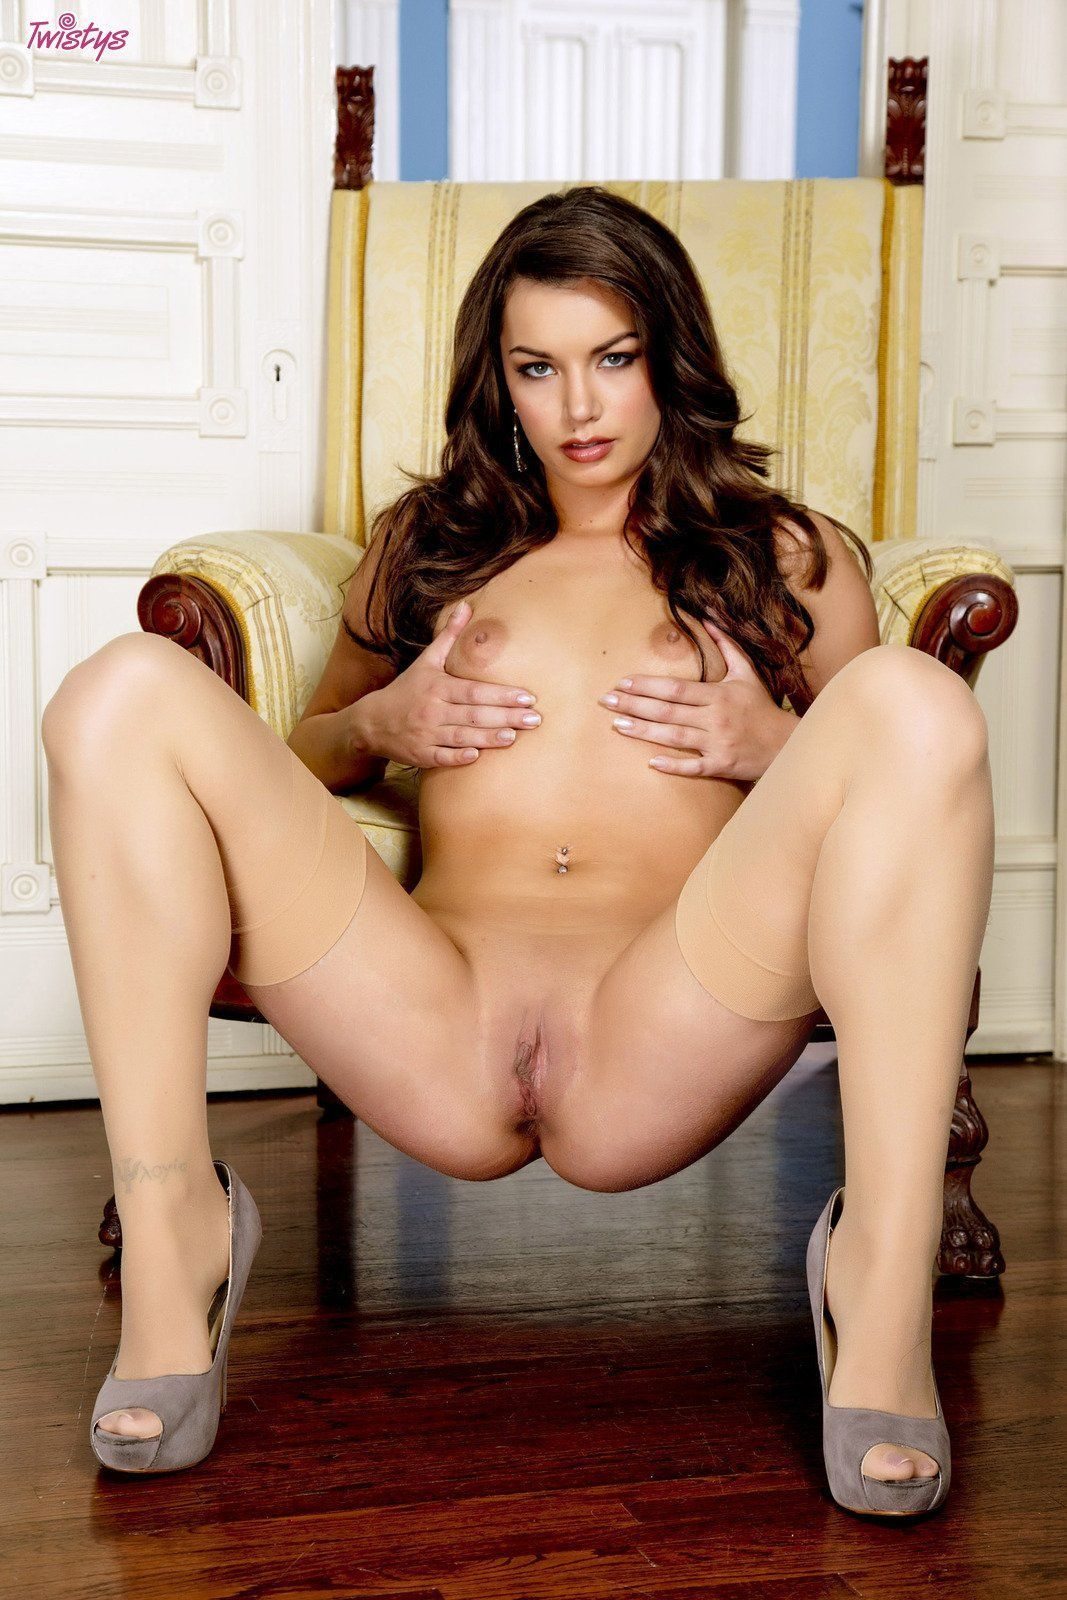 Amber Porn Pics images of amber montana naked - porn archive. comments: 4